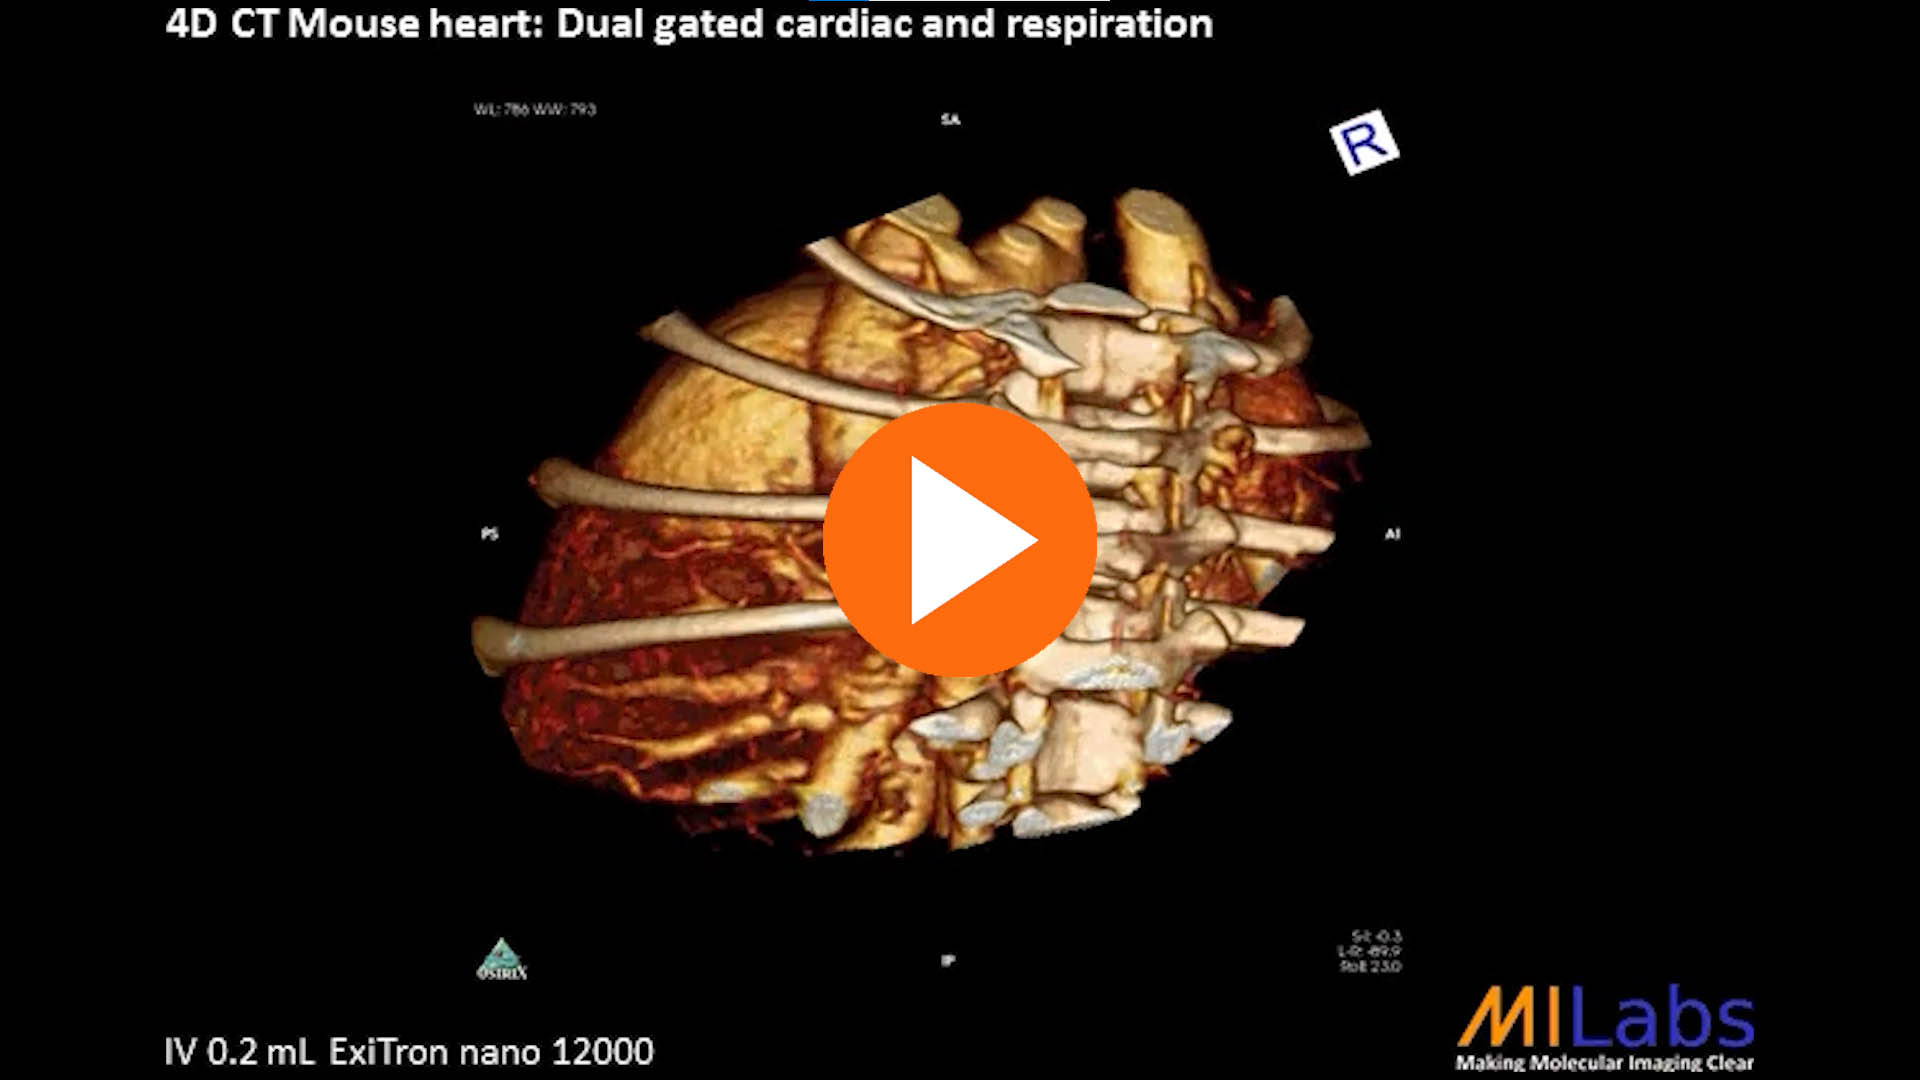 4D micro CT mouse heart dual gated cardiac and respiration